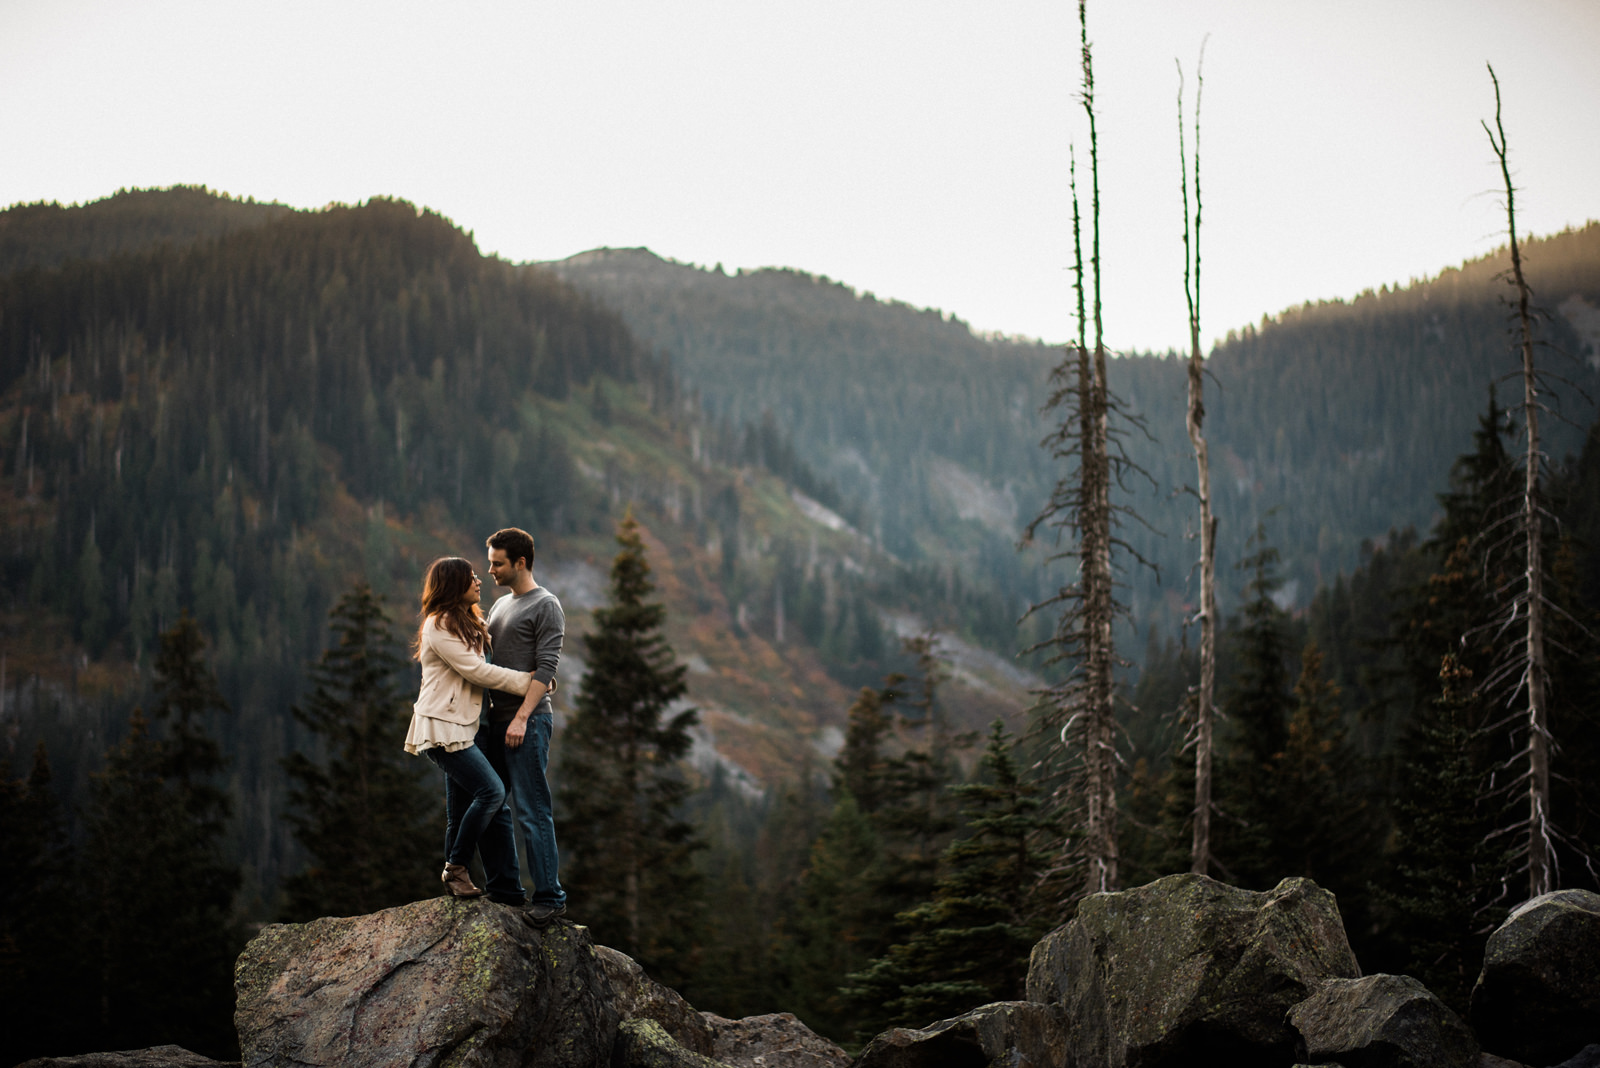 205-snoqualmie-pass-adventure-engagement-photo-by-seattle-fine-art-photographer-ryan-flynn.jpg